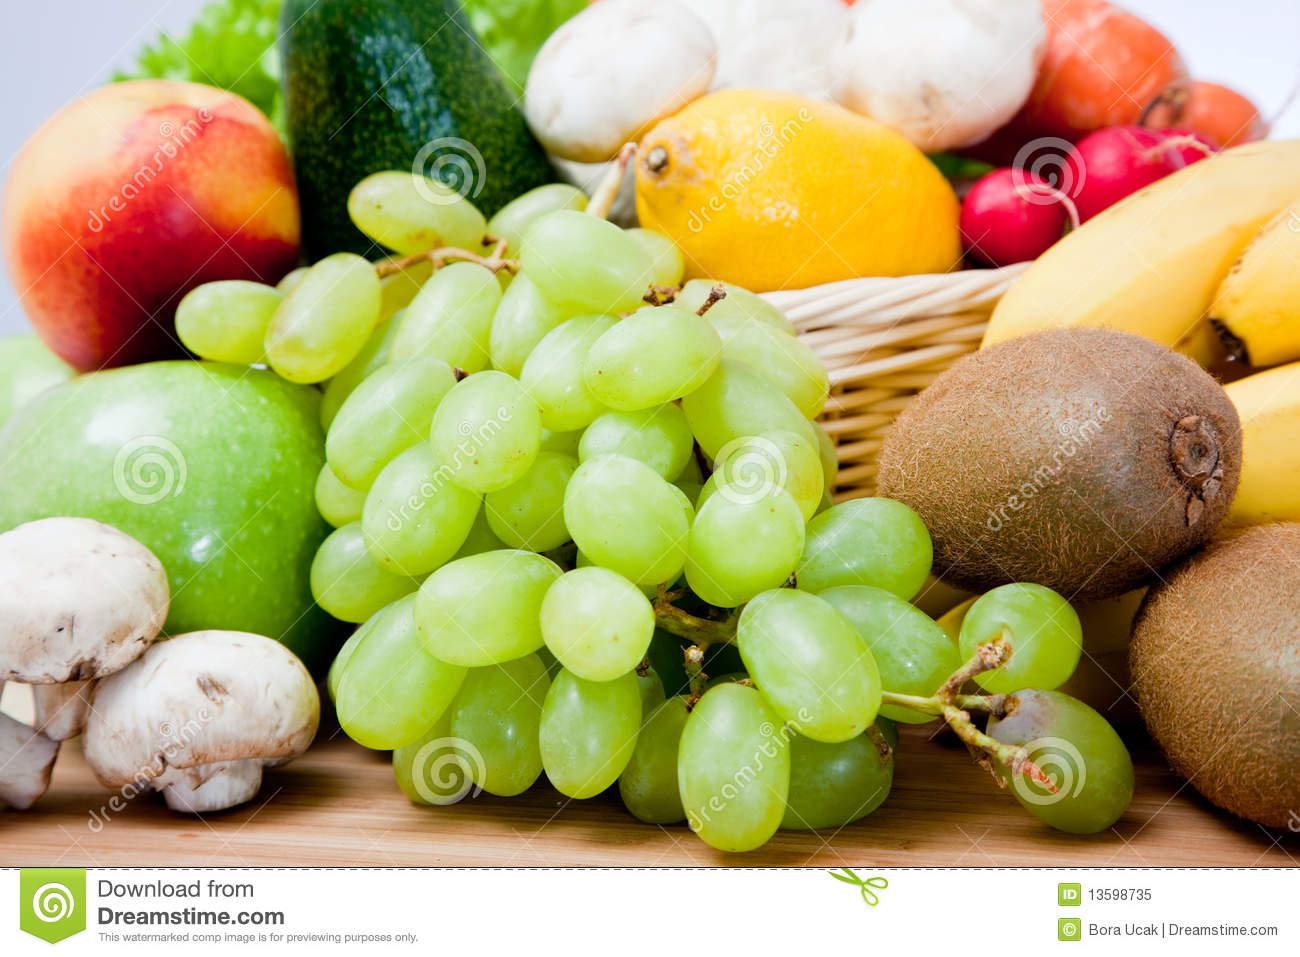 Beautiful fruit pictures - Beautiful Fruits And Vegetables